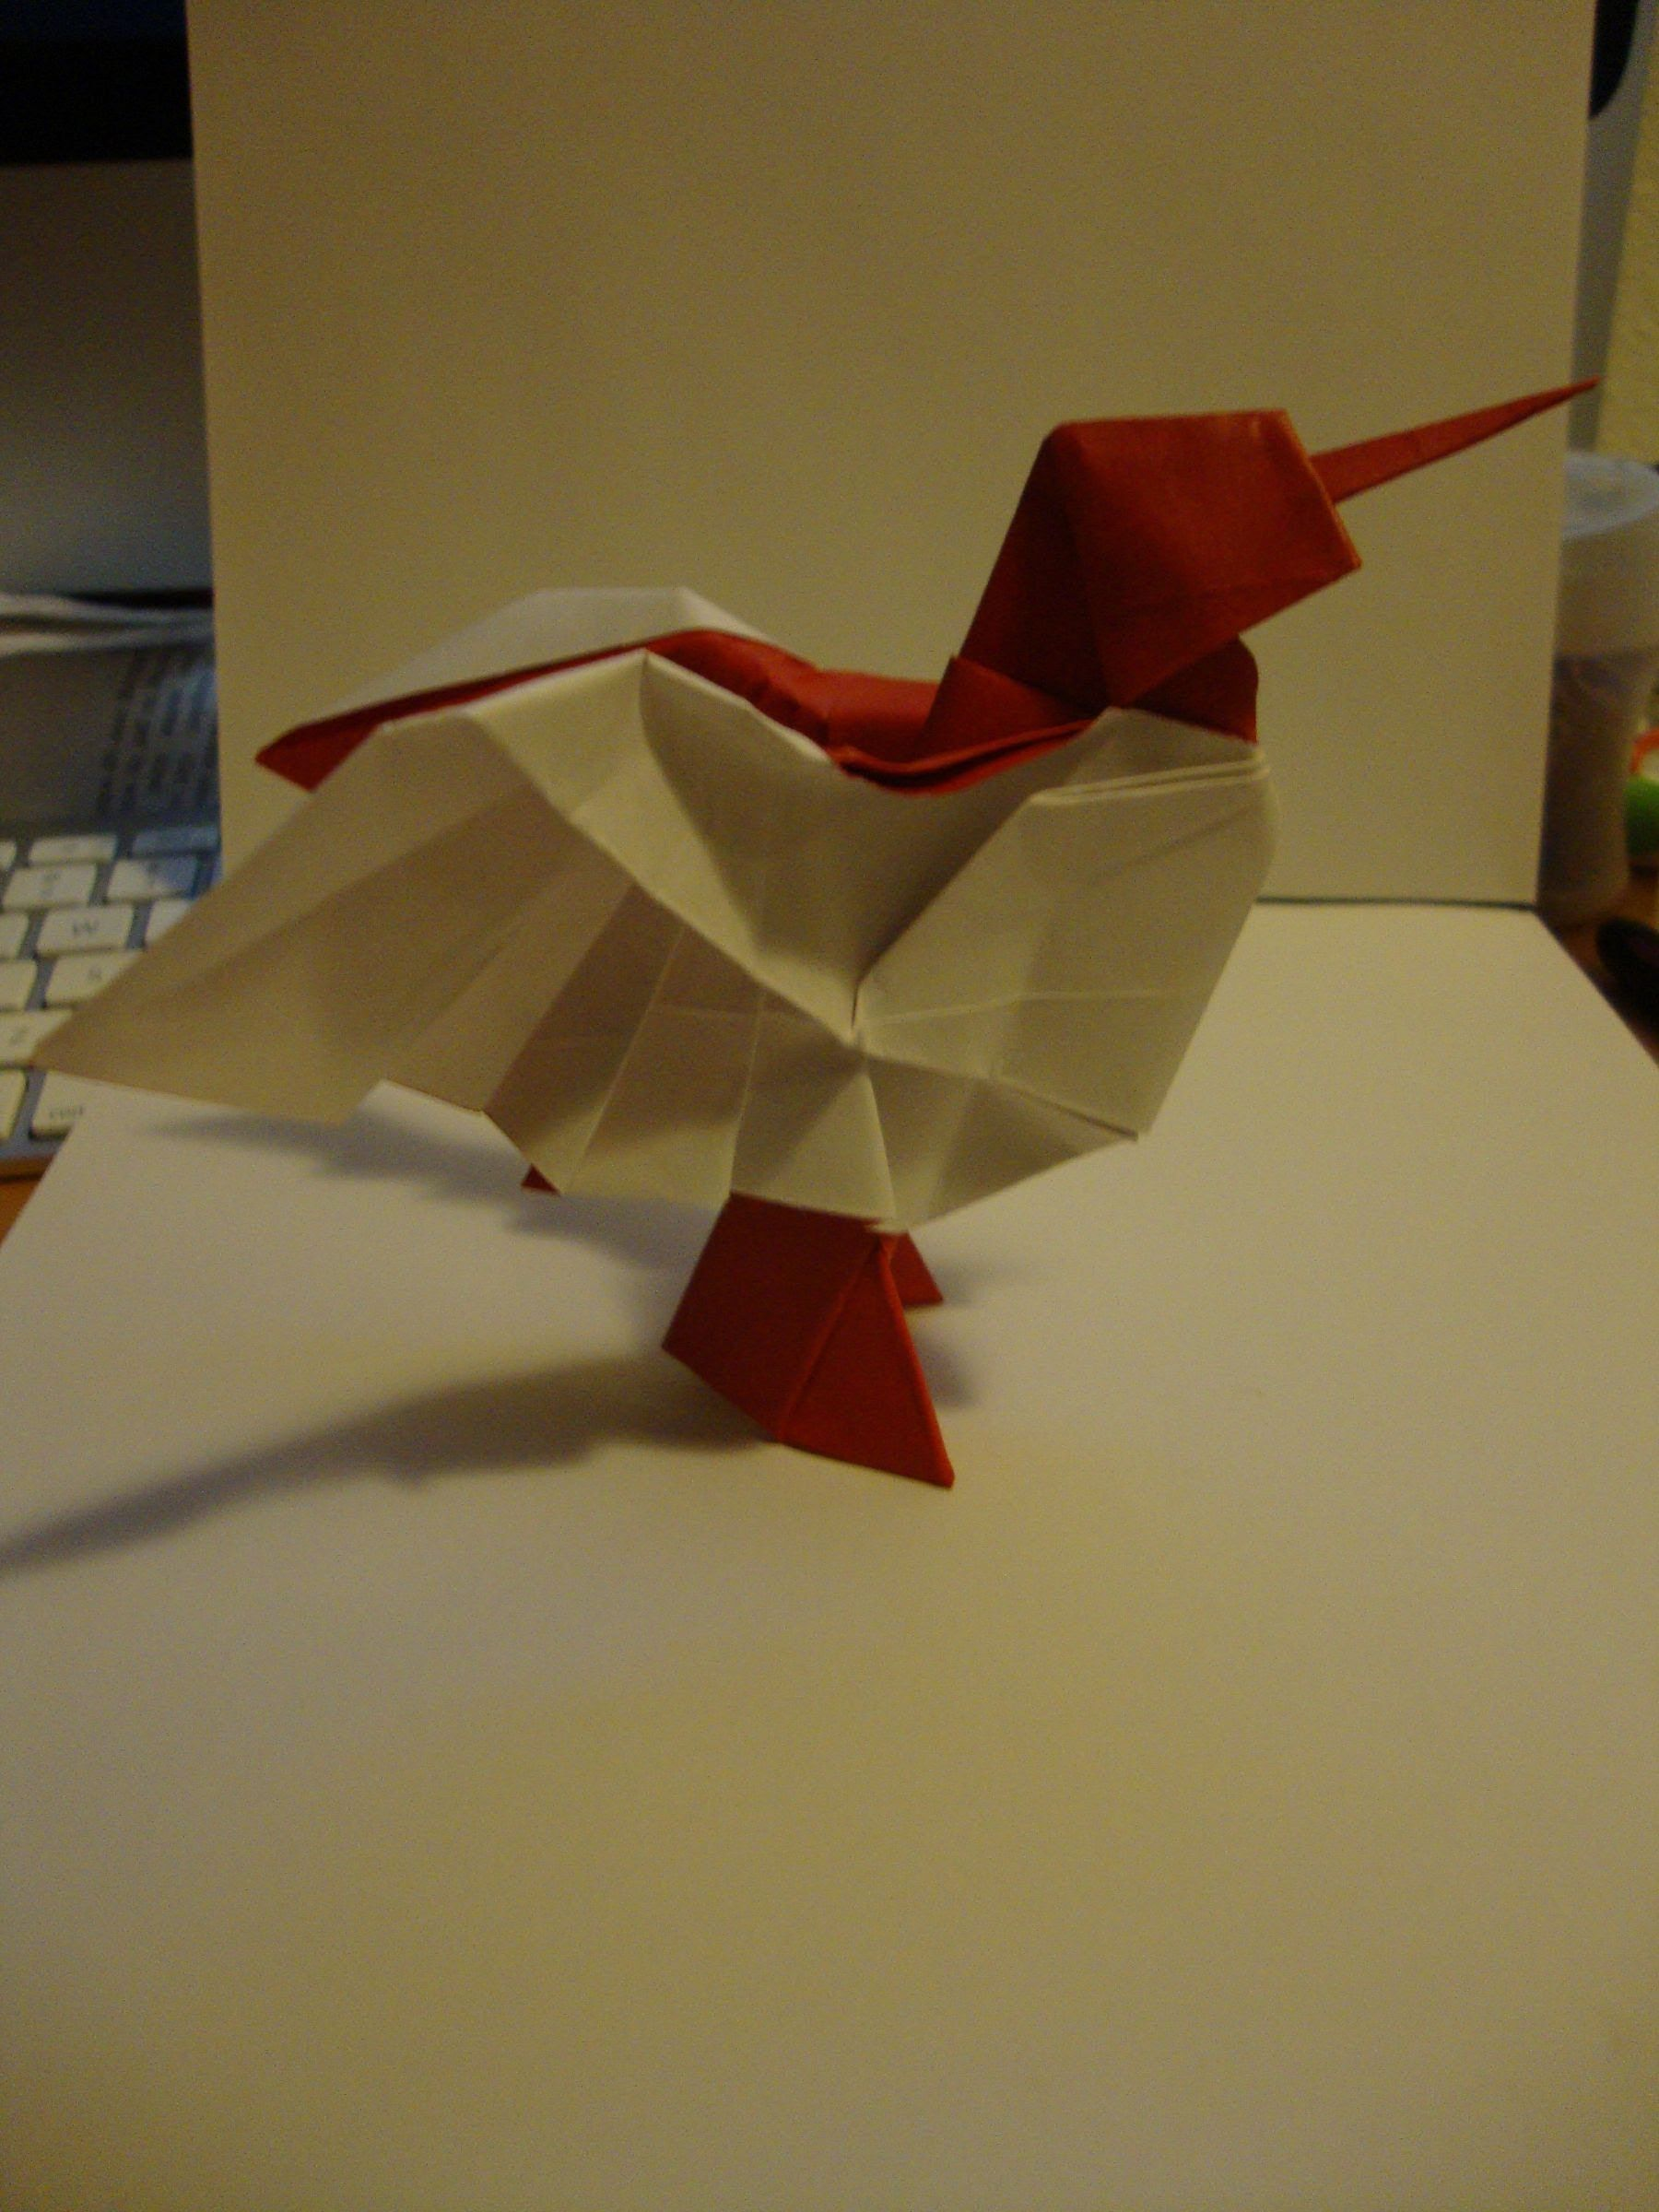 origami hummingbird diagram instructions grow room designs with pictures and how to by jesse barr crafts